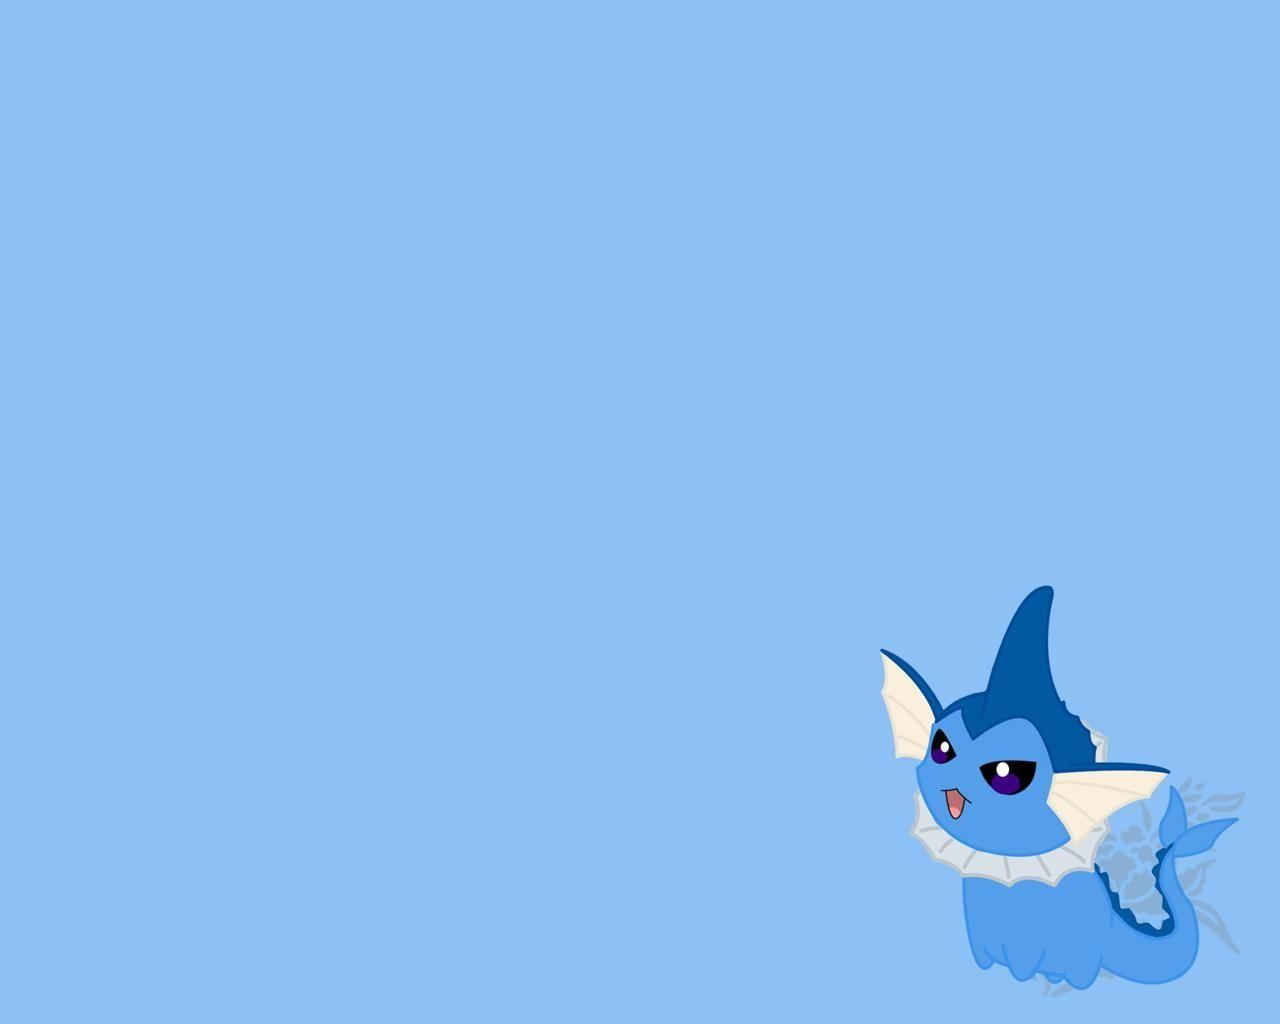 pokemon vaporeon 1280x1024 wallpaper High Quality Wallpapers,High ...